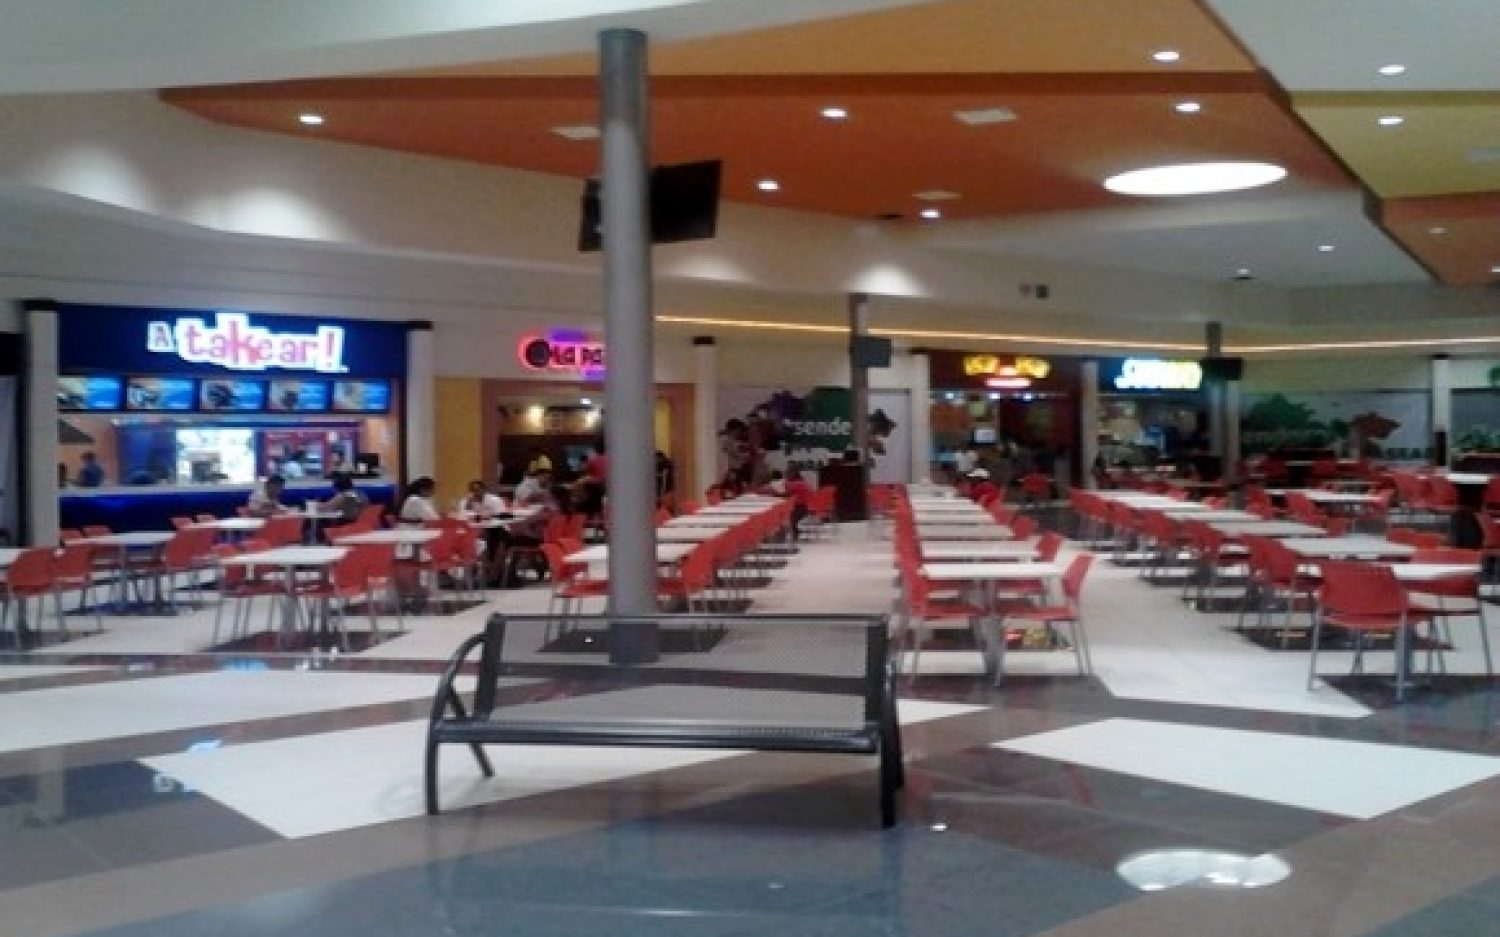 Co-Plaza Sendero Villahermosa (61)